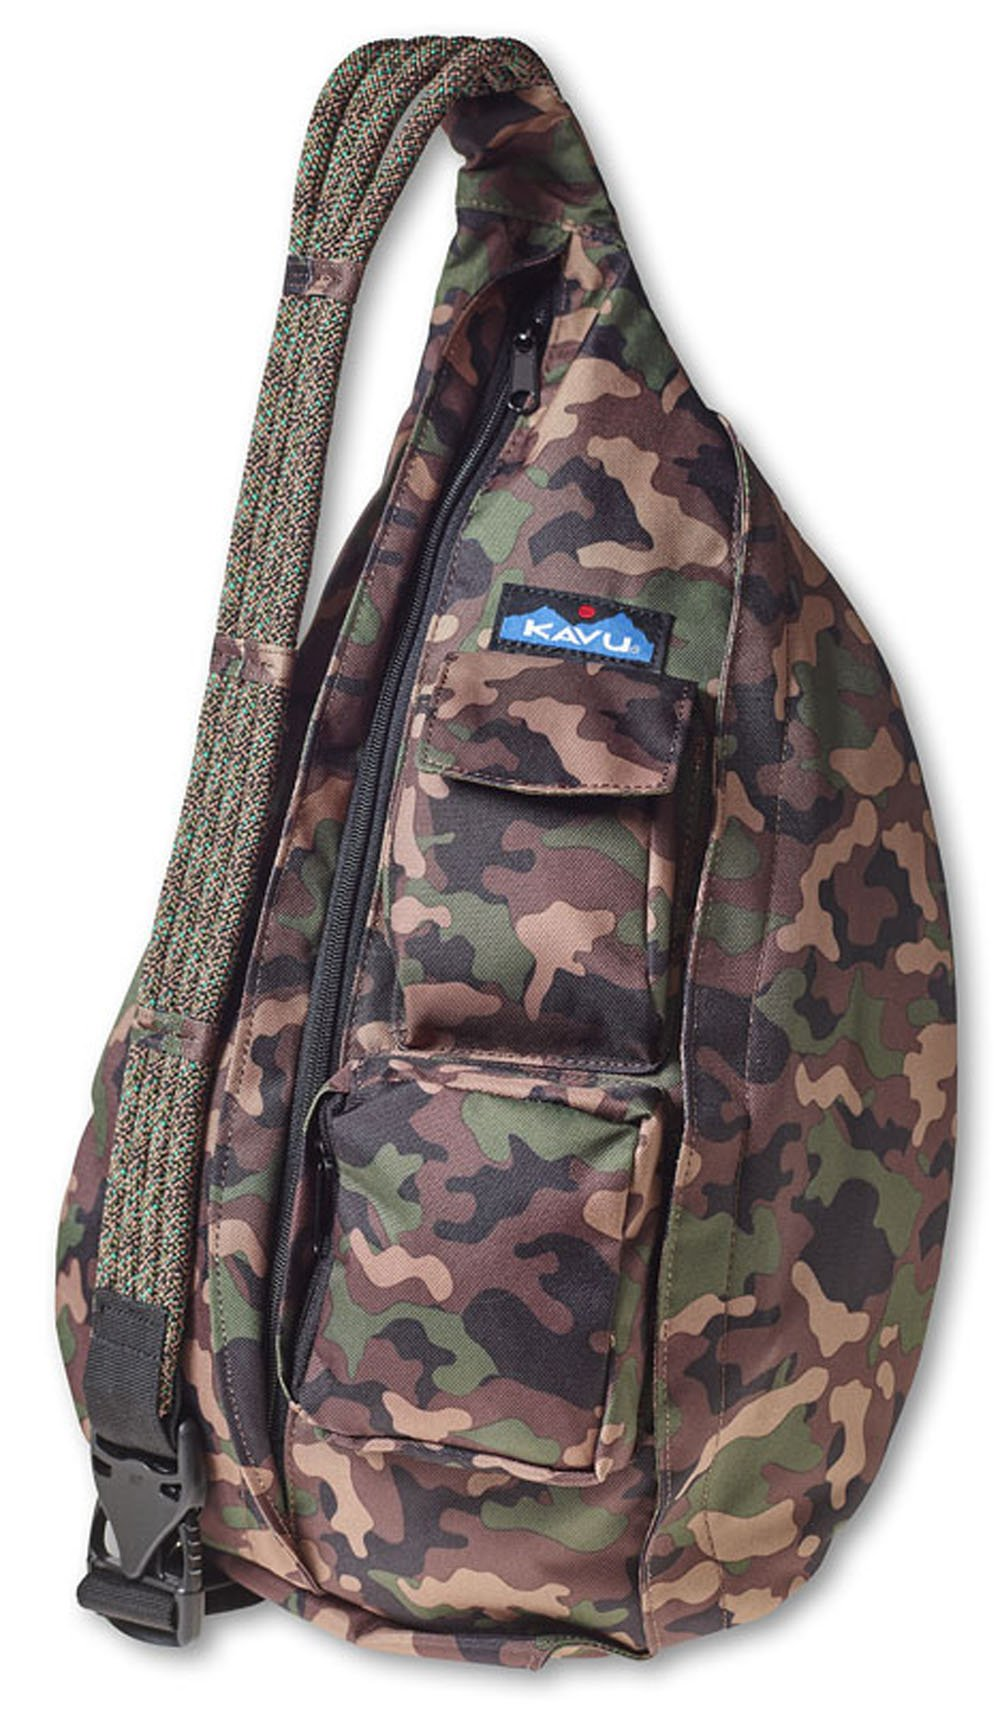 KAVU Rope Sling Bag, Camo, One Size